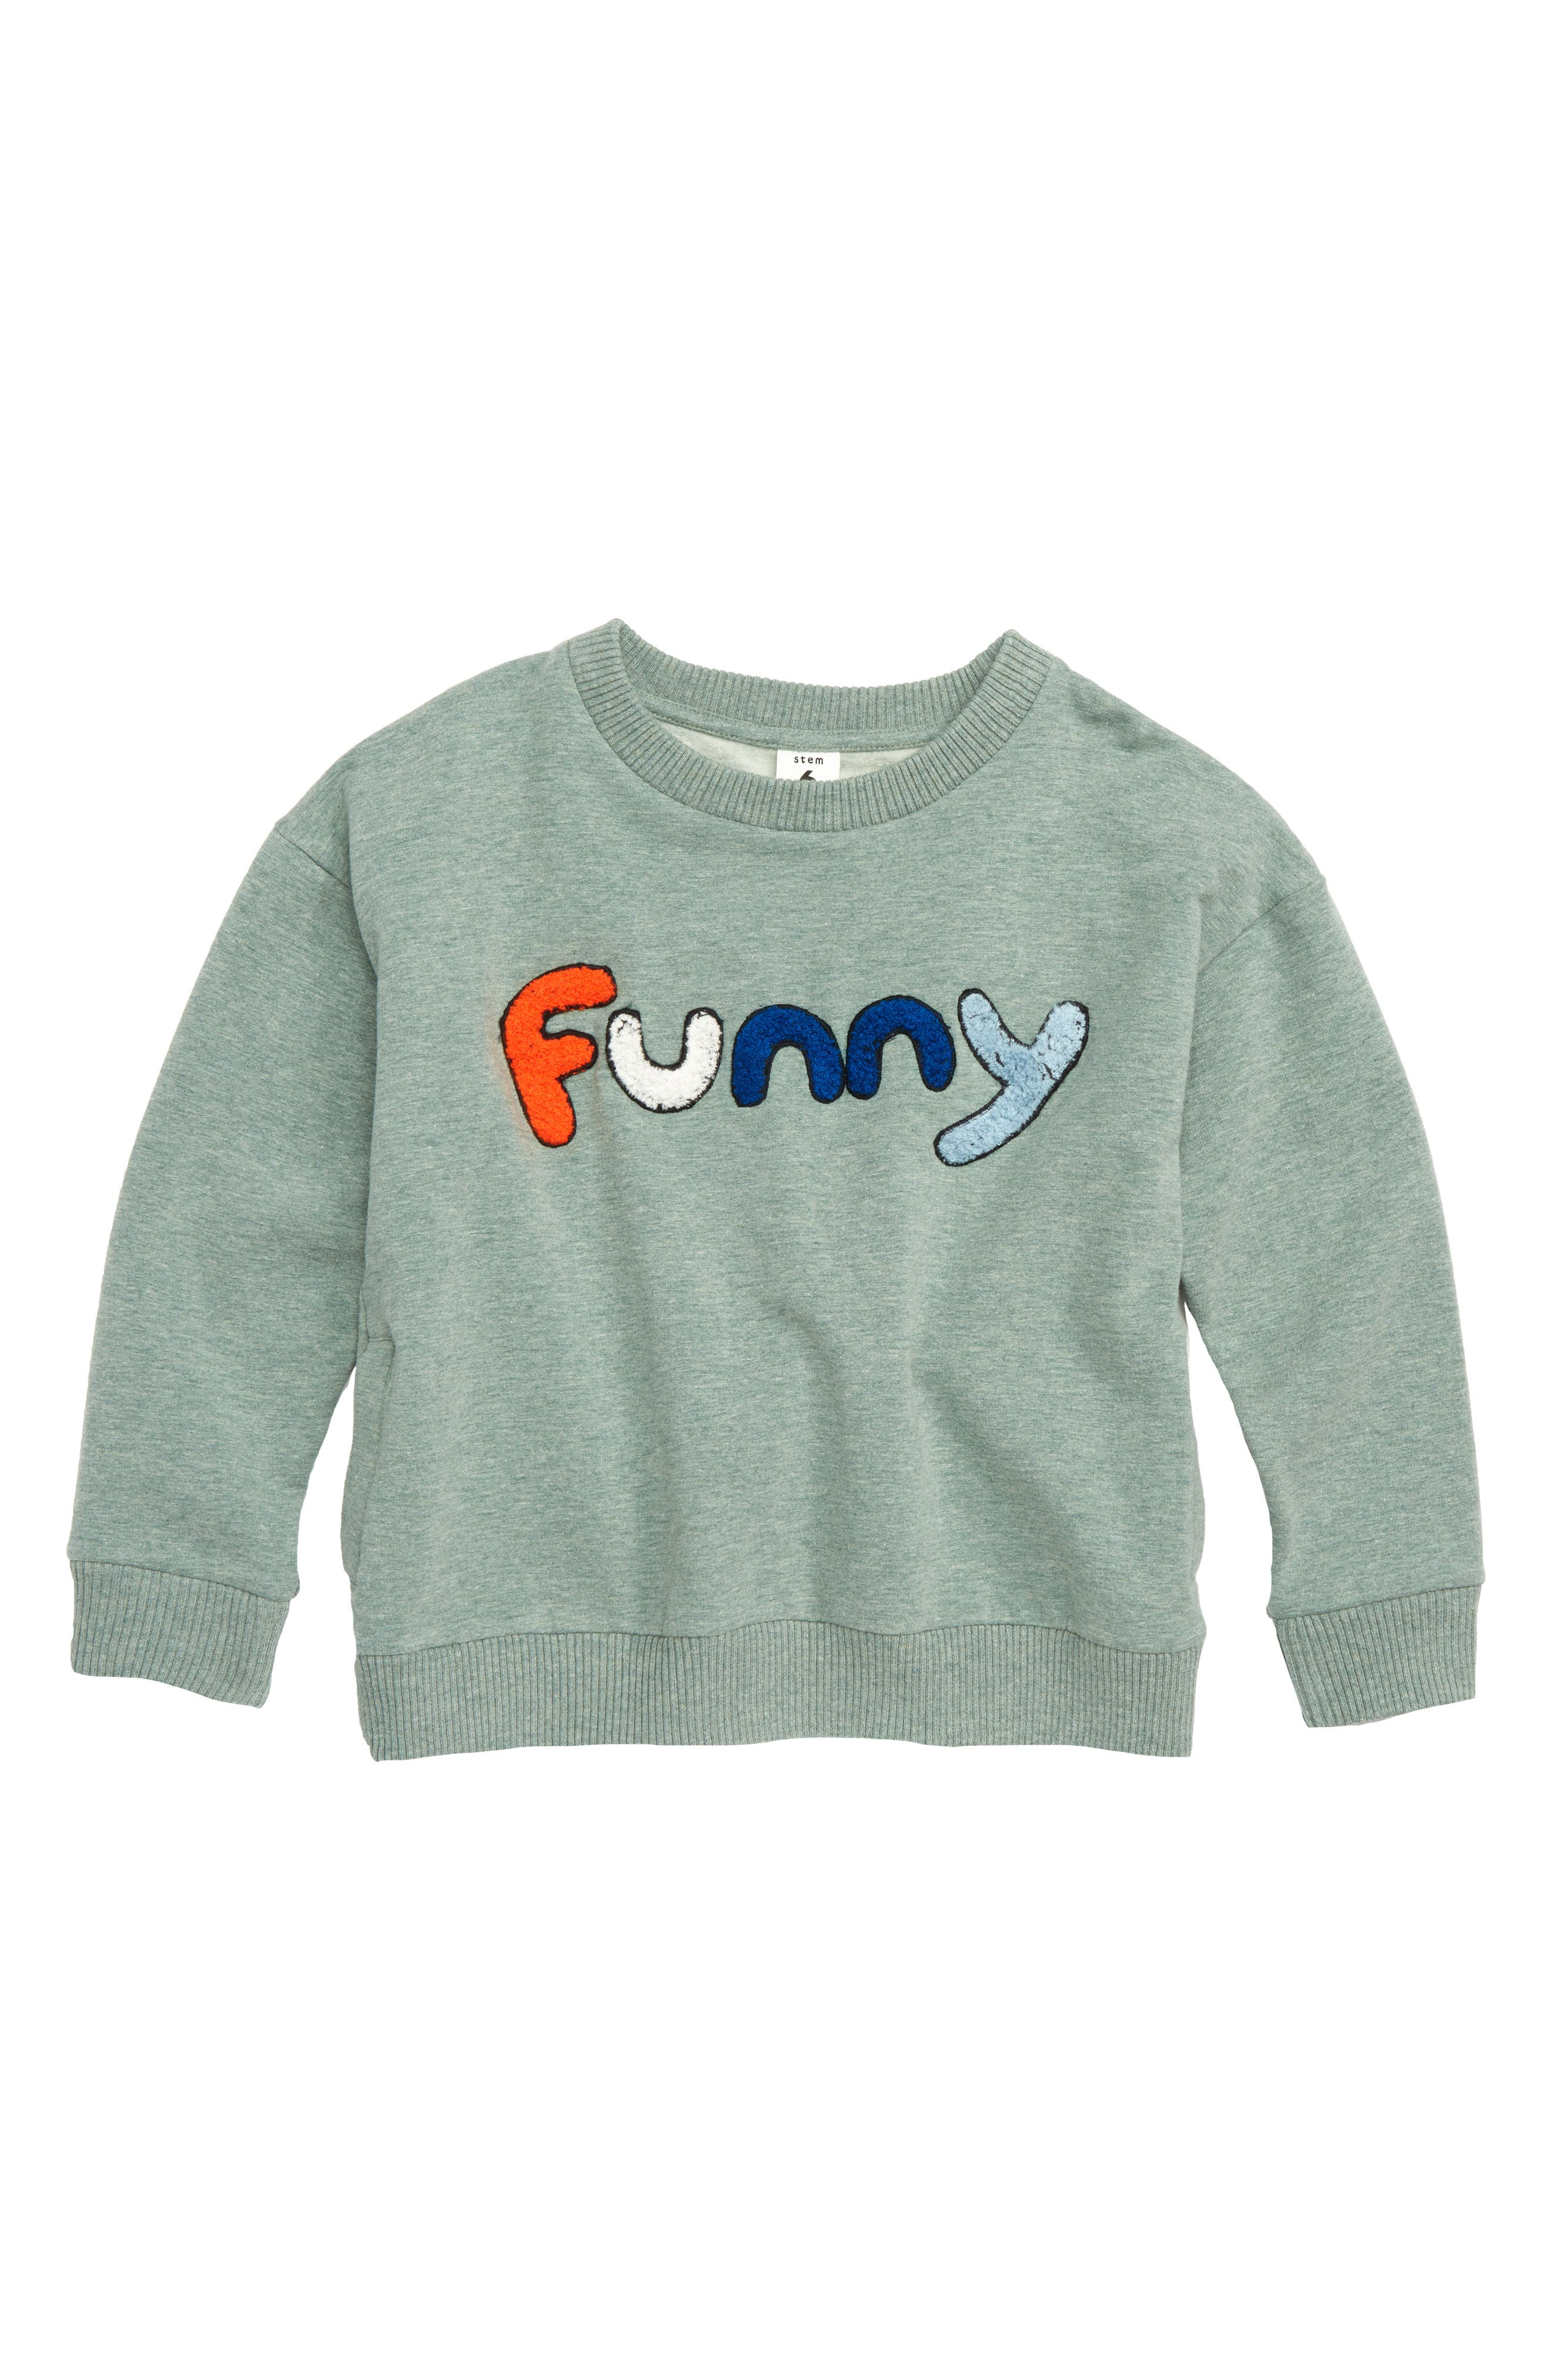 Funny 3D Graphic Sweatshirt,                             Main thumbnail 1, color,                             GREEN AGAVE HEATHER FUNNY